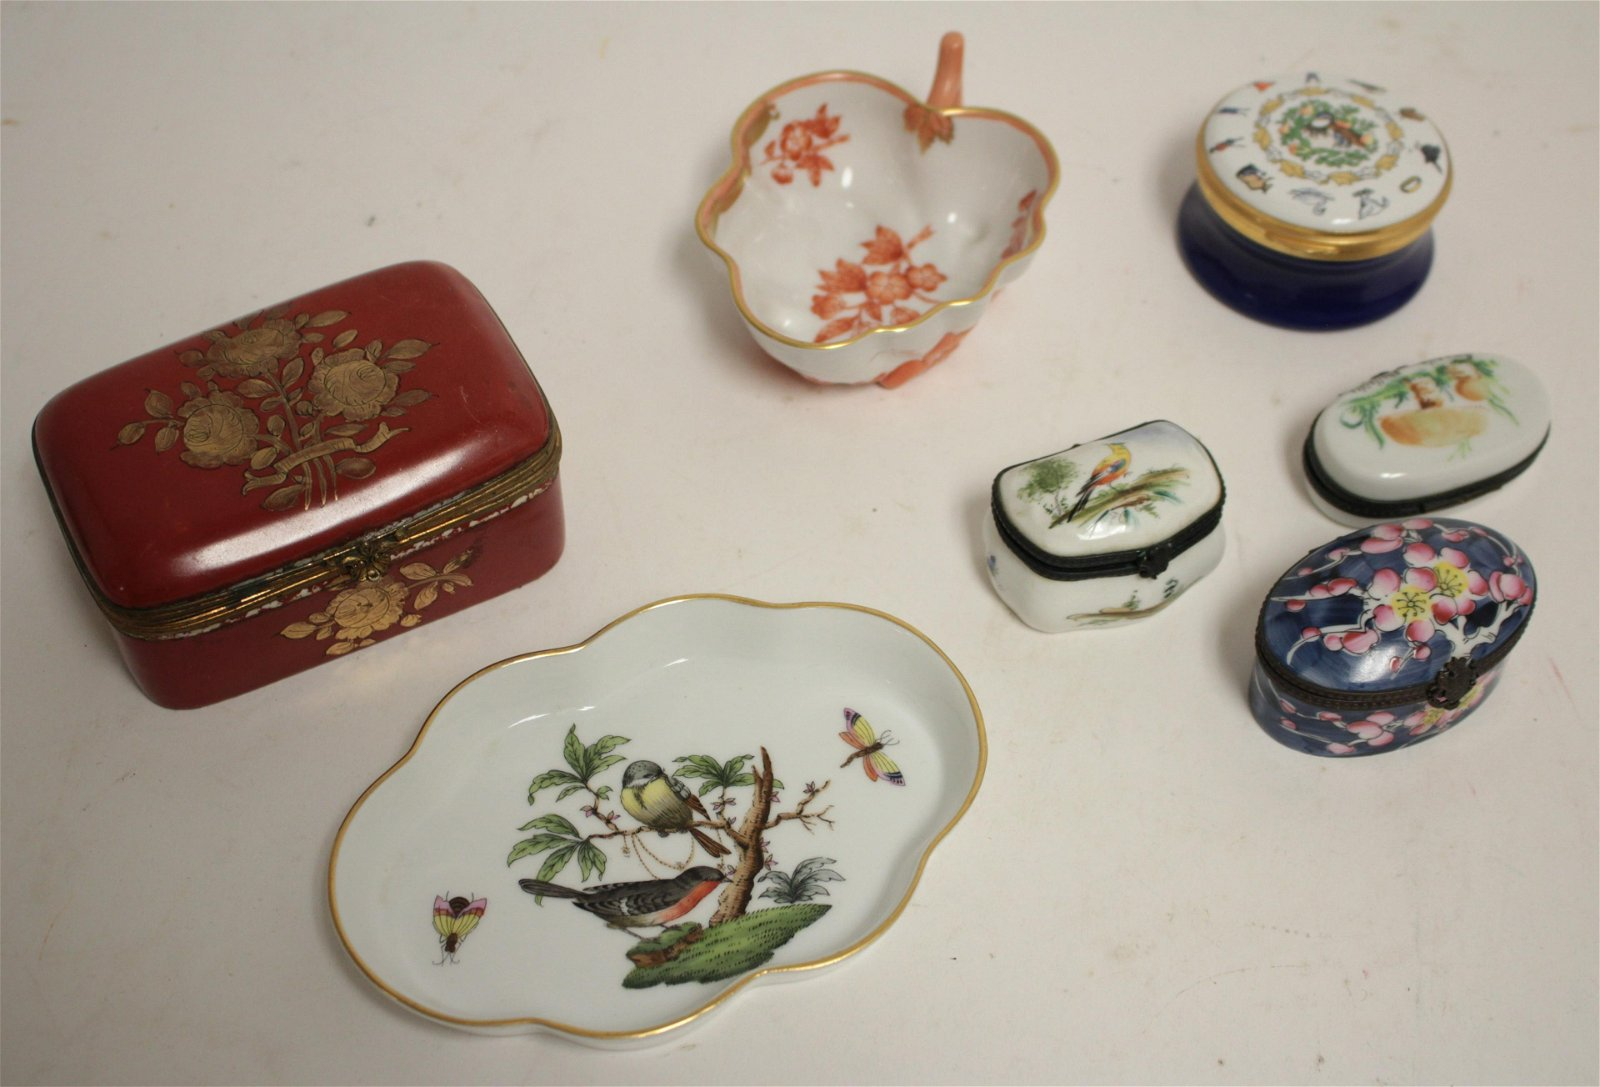 7 Enameled Lidded Boxes, Small Dishes Collectibles